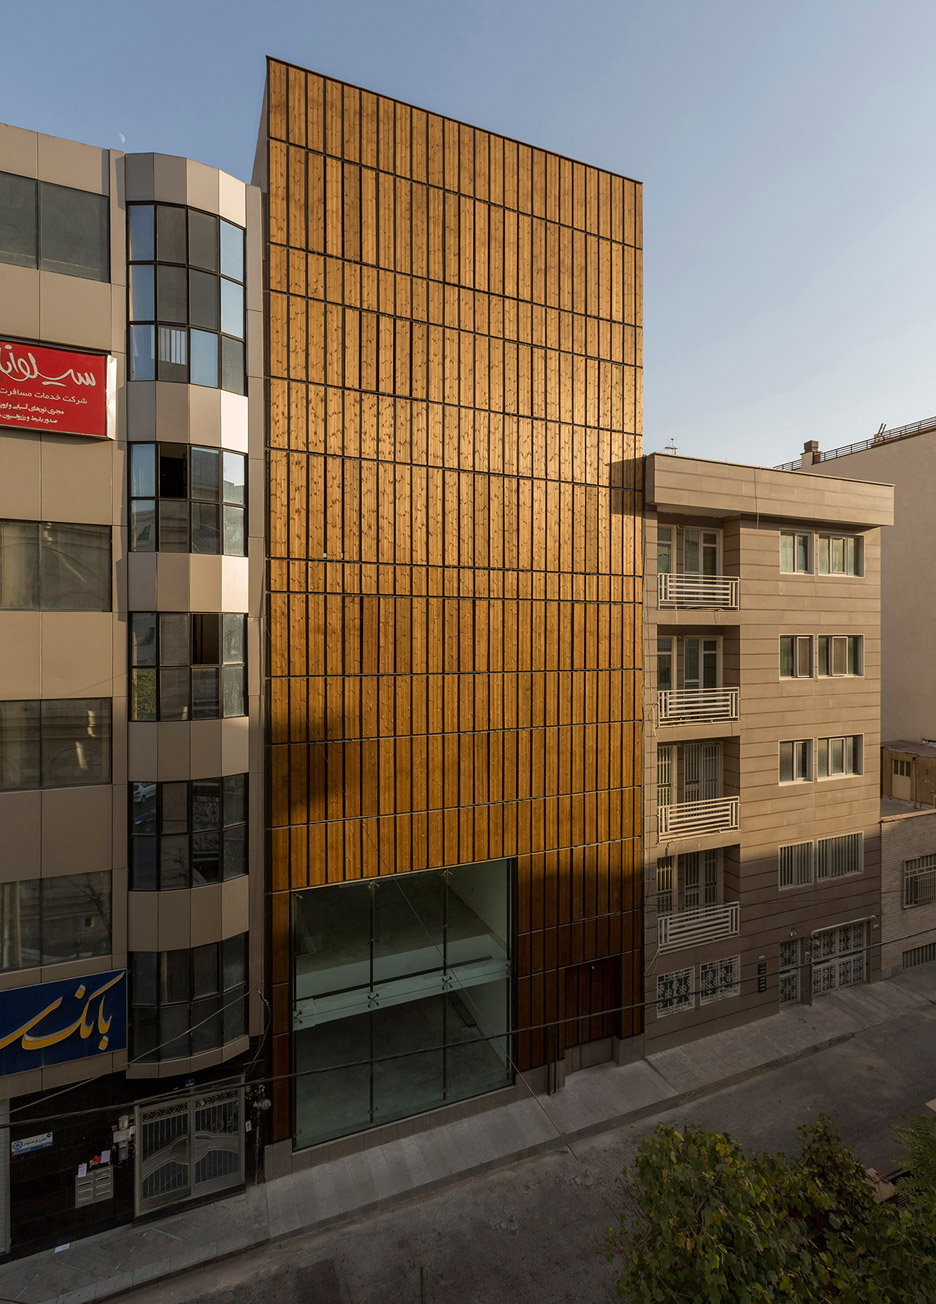 office-block-tehran-lp2-architecture-studio-iran-commercial-facade-connection-relationship-interior-exterior-wood_dezeen_936_12